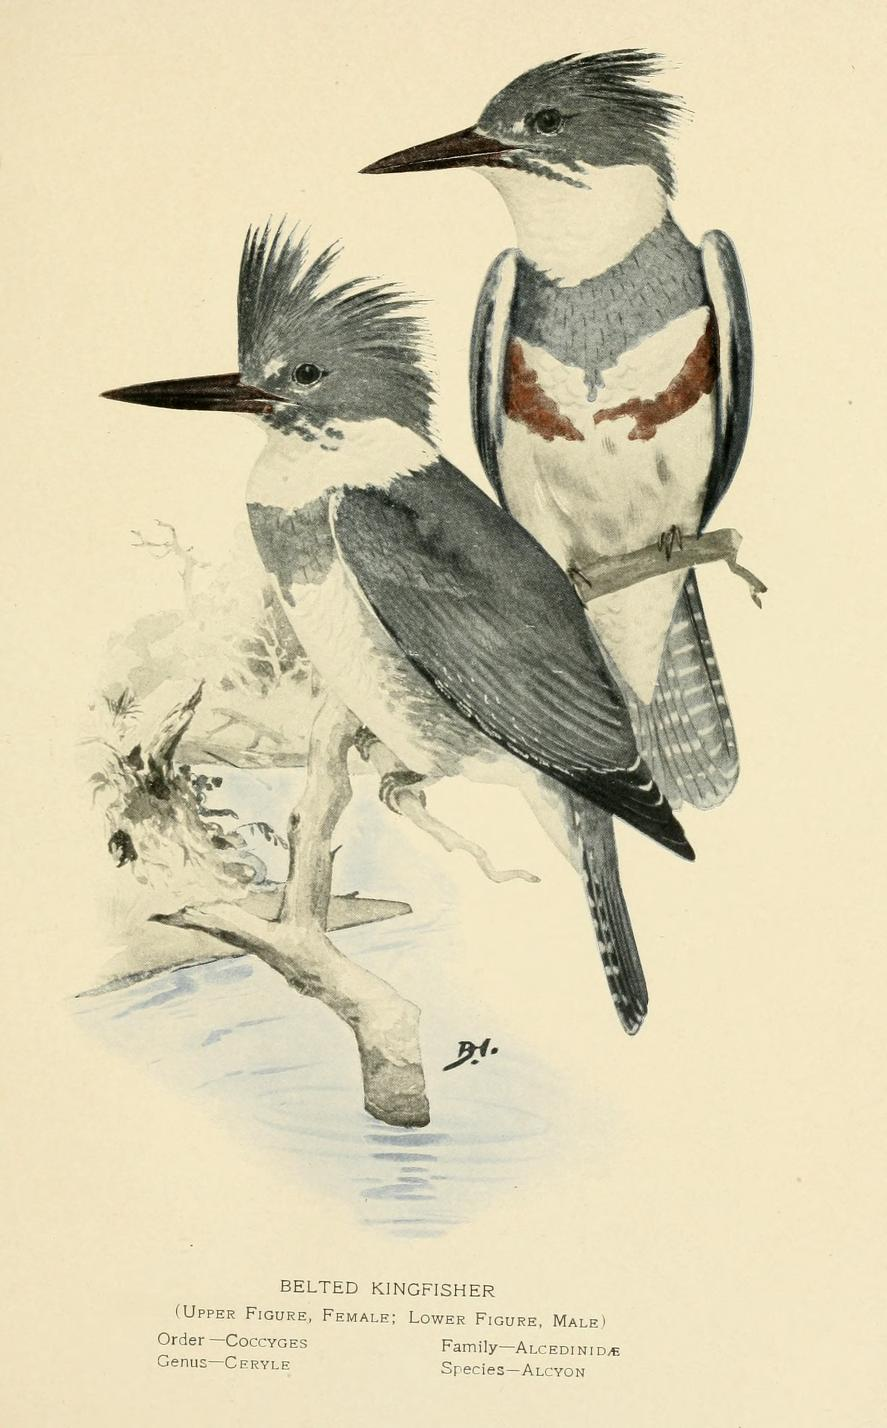 Two birds, a male and female belted kingfisher perched on a branch over water